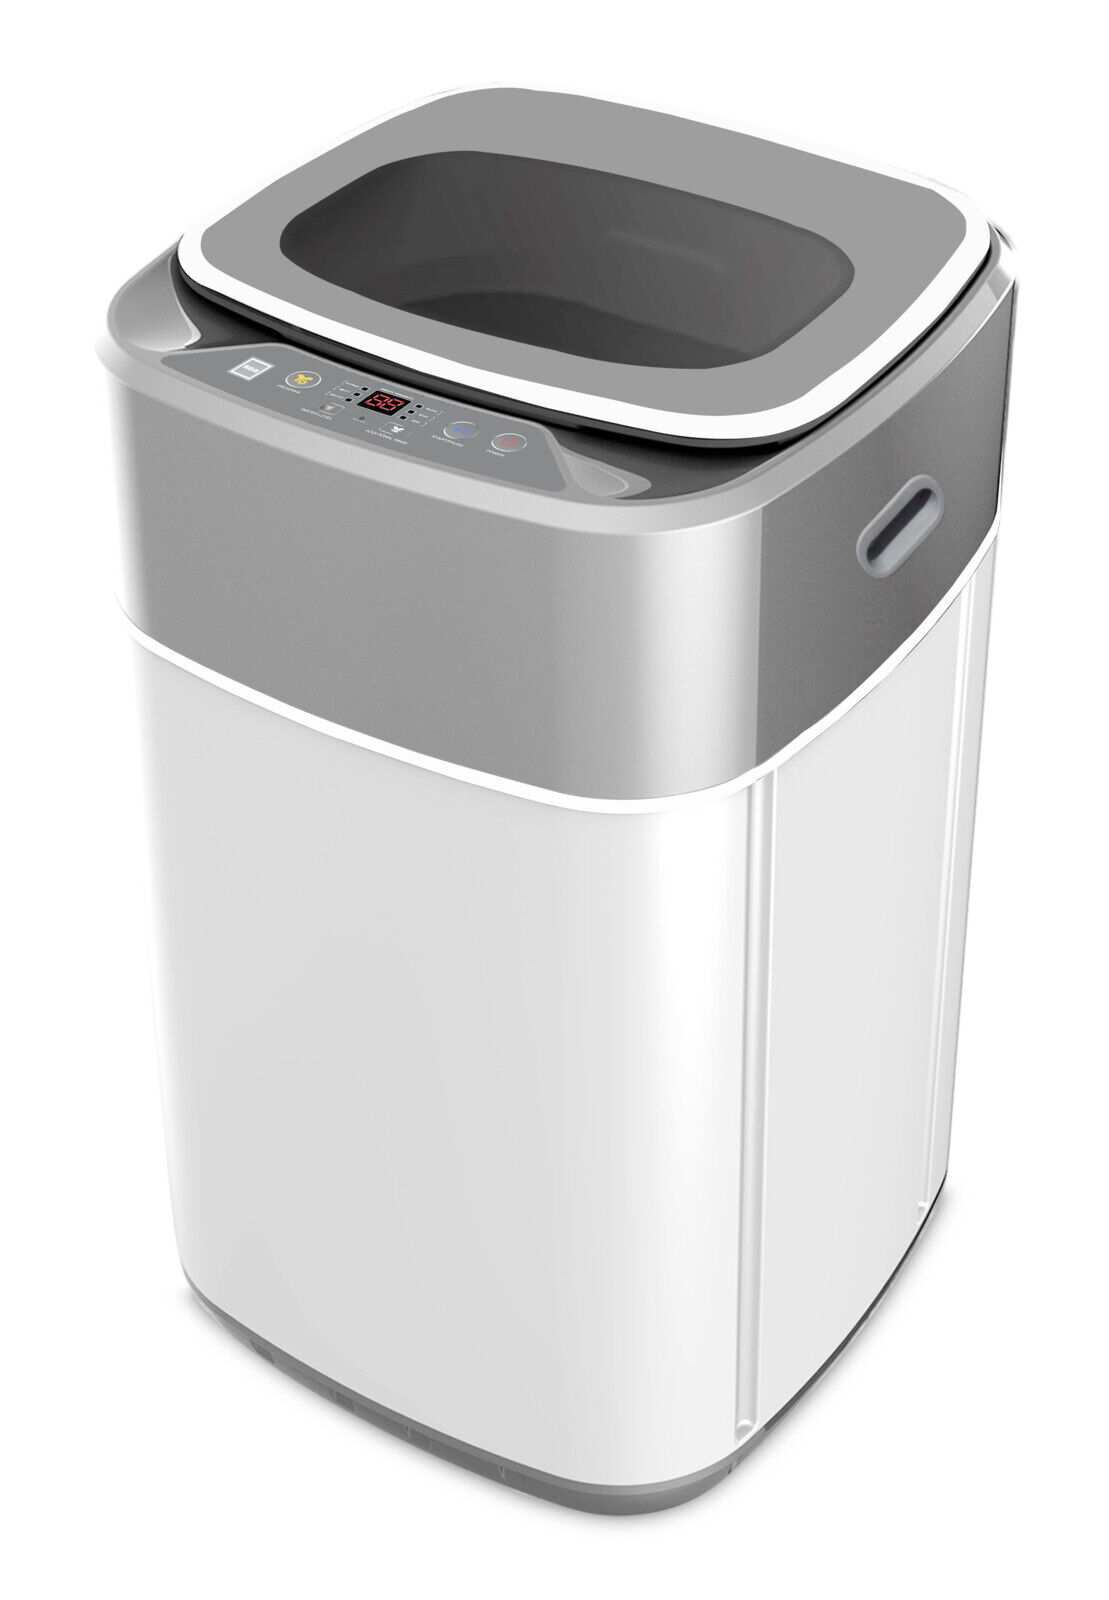 RCA 1.0 cu ft Top Load,compact & portable Washer,low operati